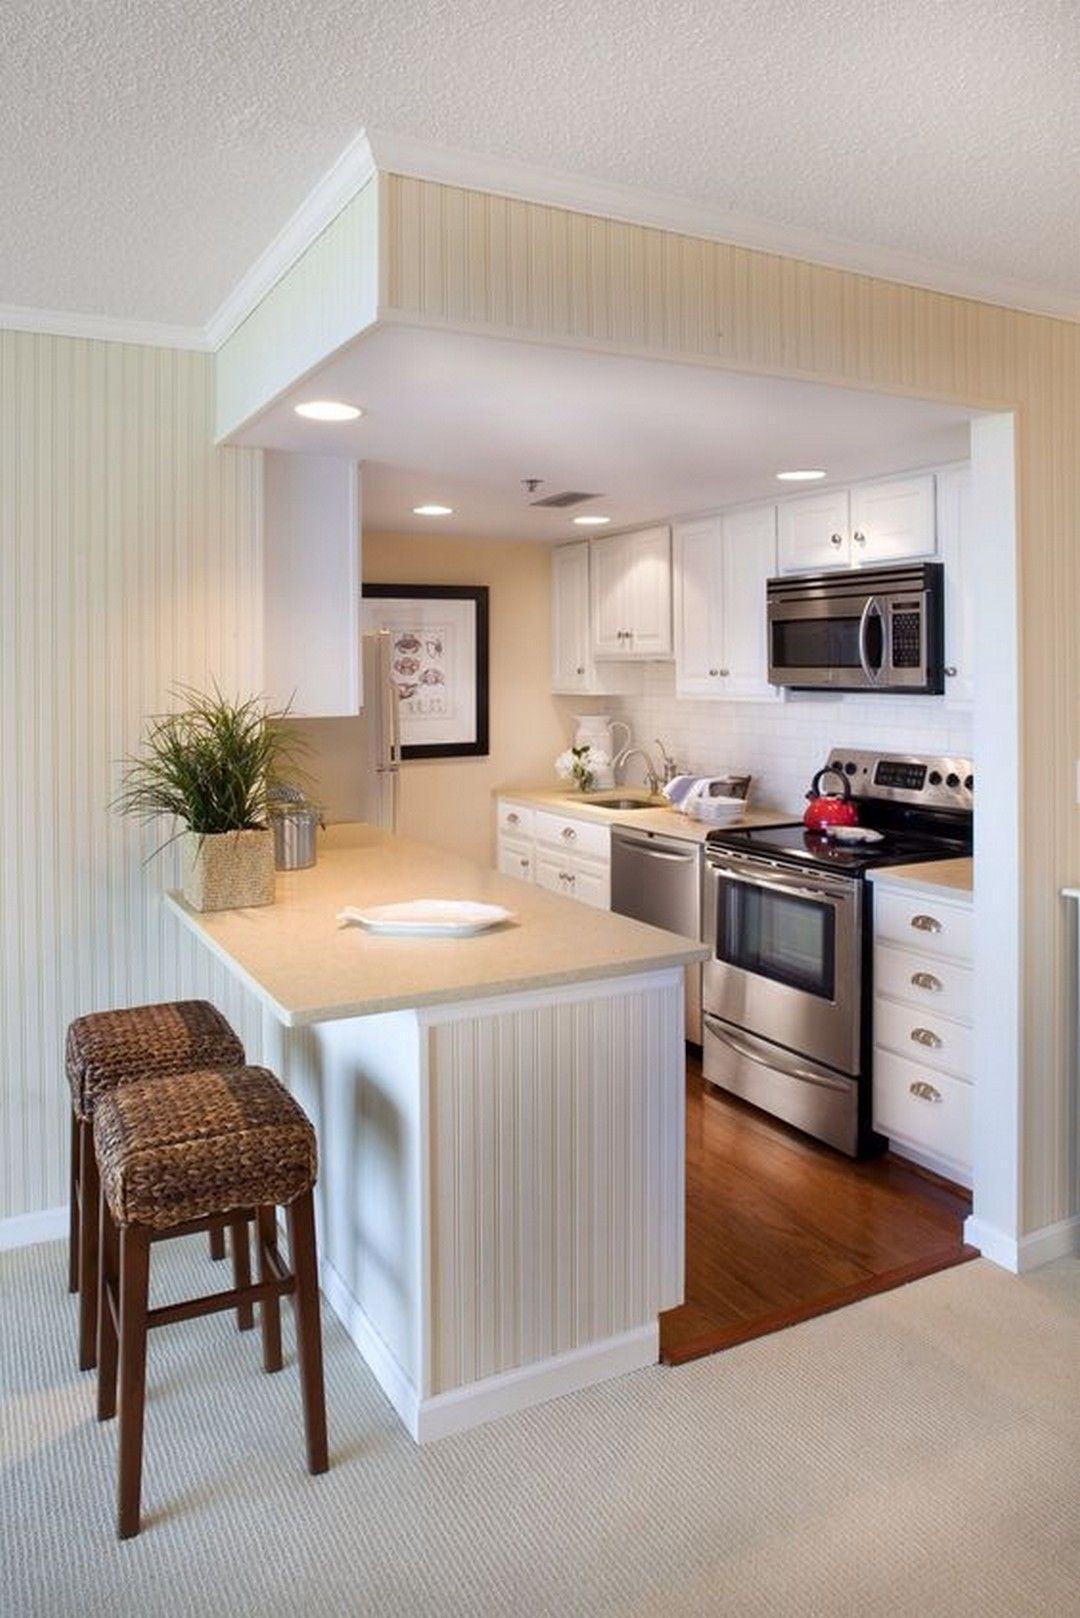 Being Smaller Is The Best Way Of Making A Good Kitchen Design Endearing Good Kitchen Designs Review